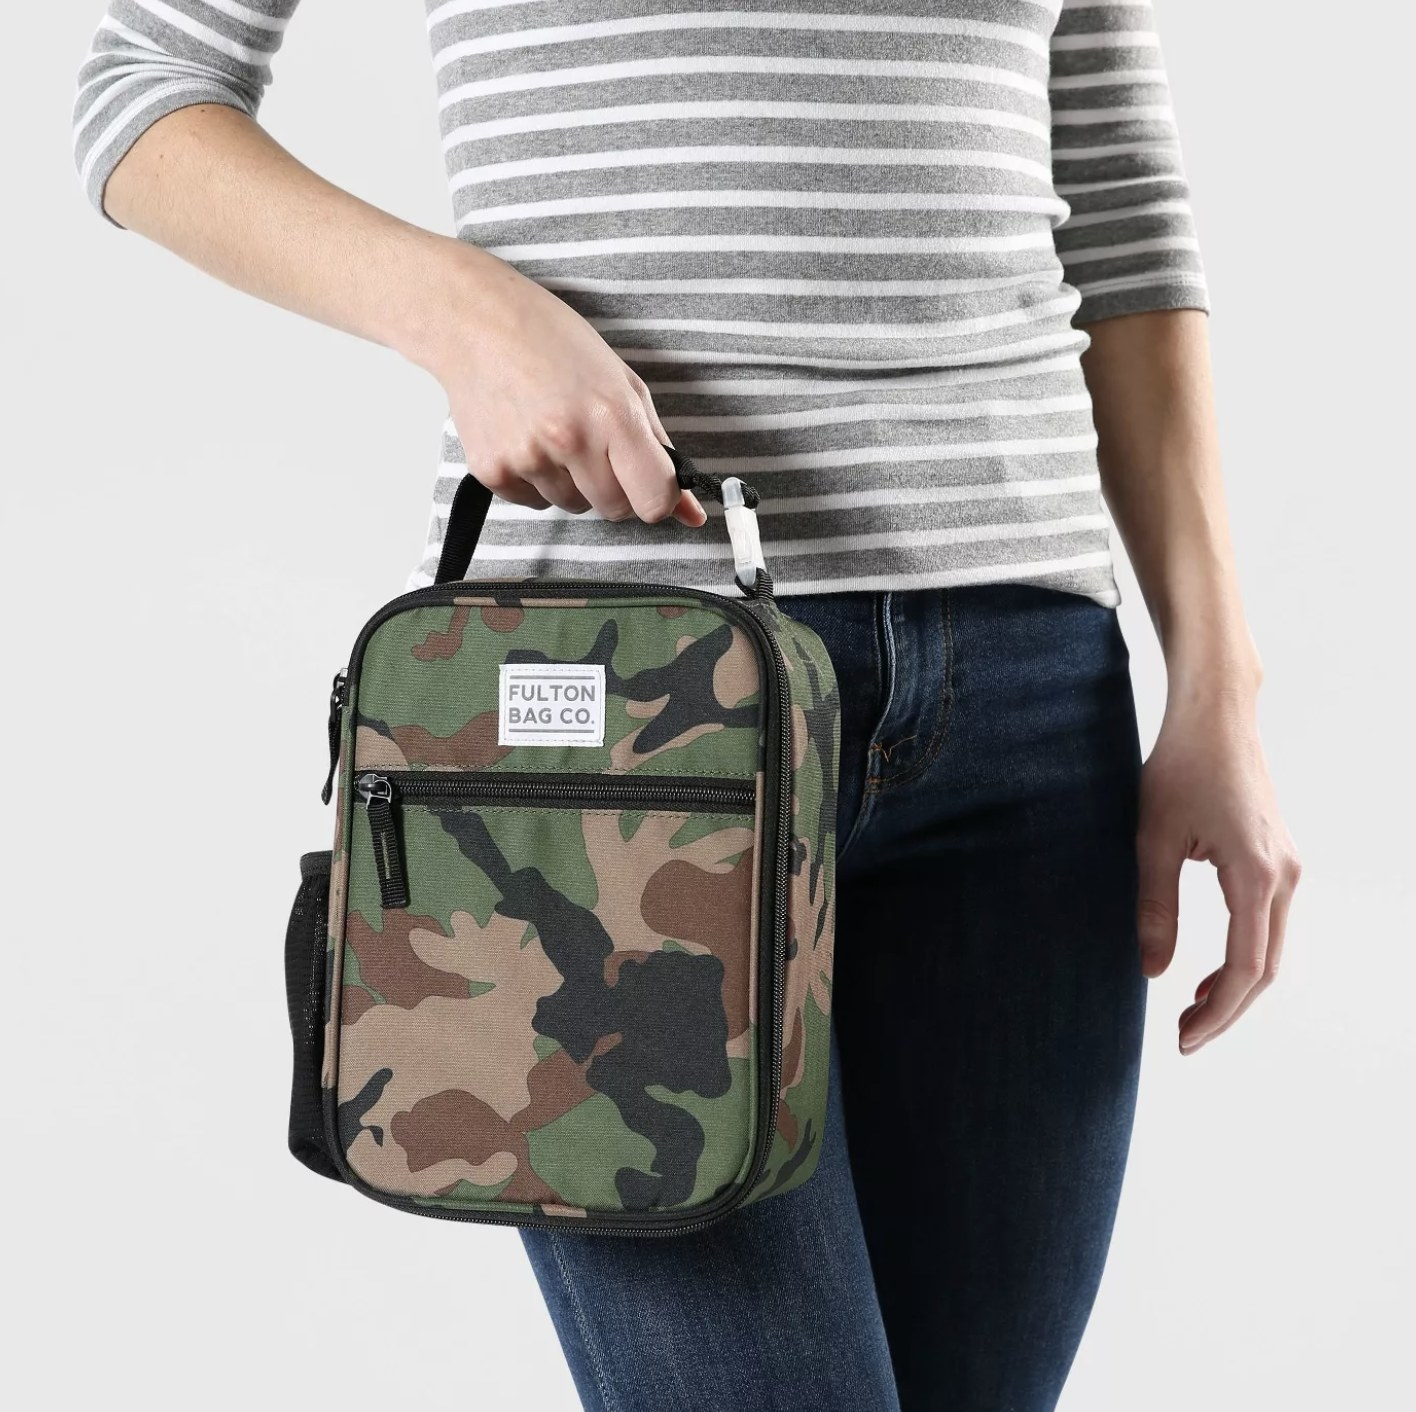 A model holding a camo lunchbox that has an exterior zipper pocket and a water bottle pocket